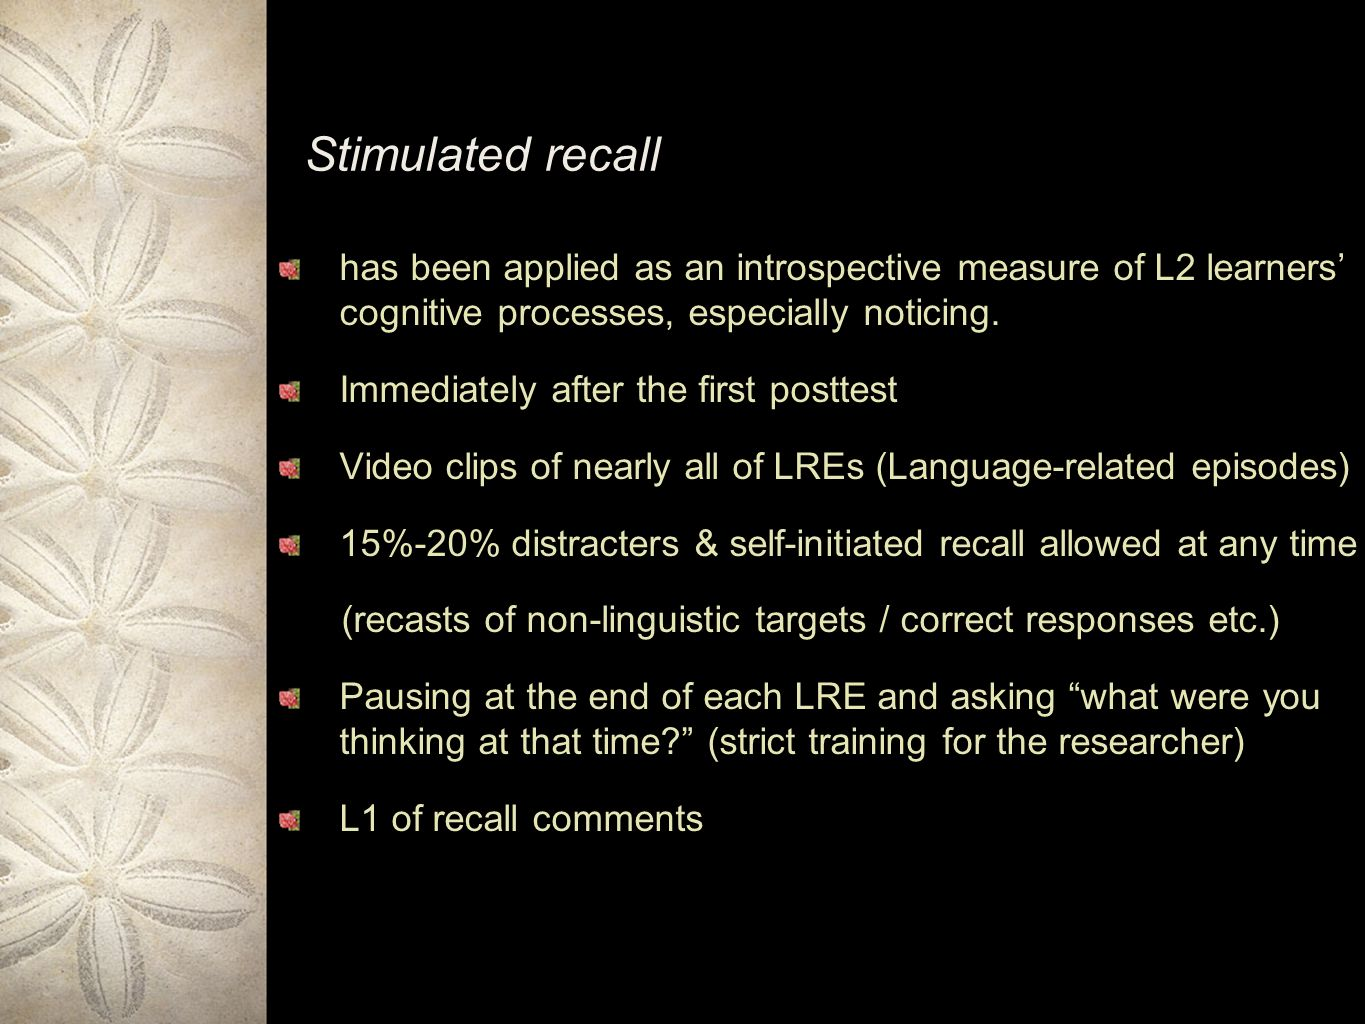 Stimulated recall has been applied as an introspective measure of L2 learners' cognitive processes, especially noticing.